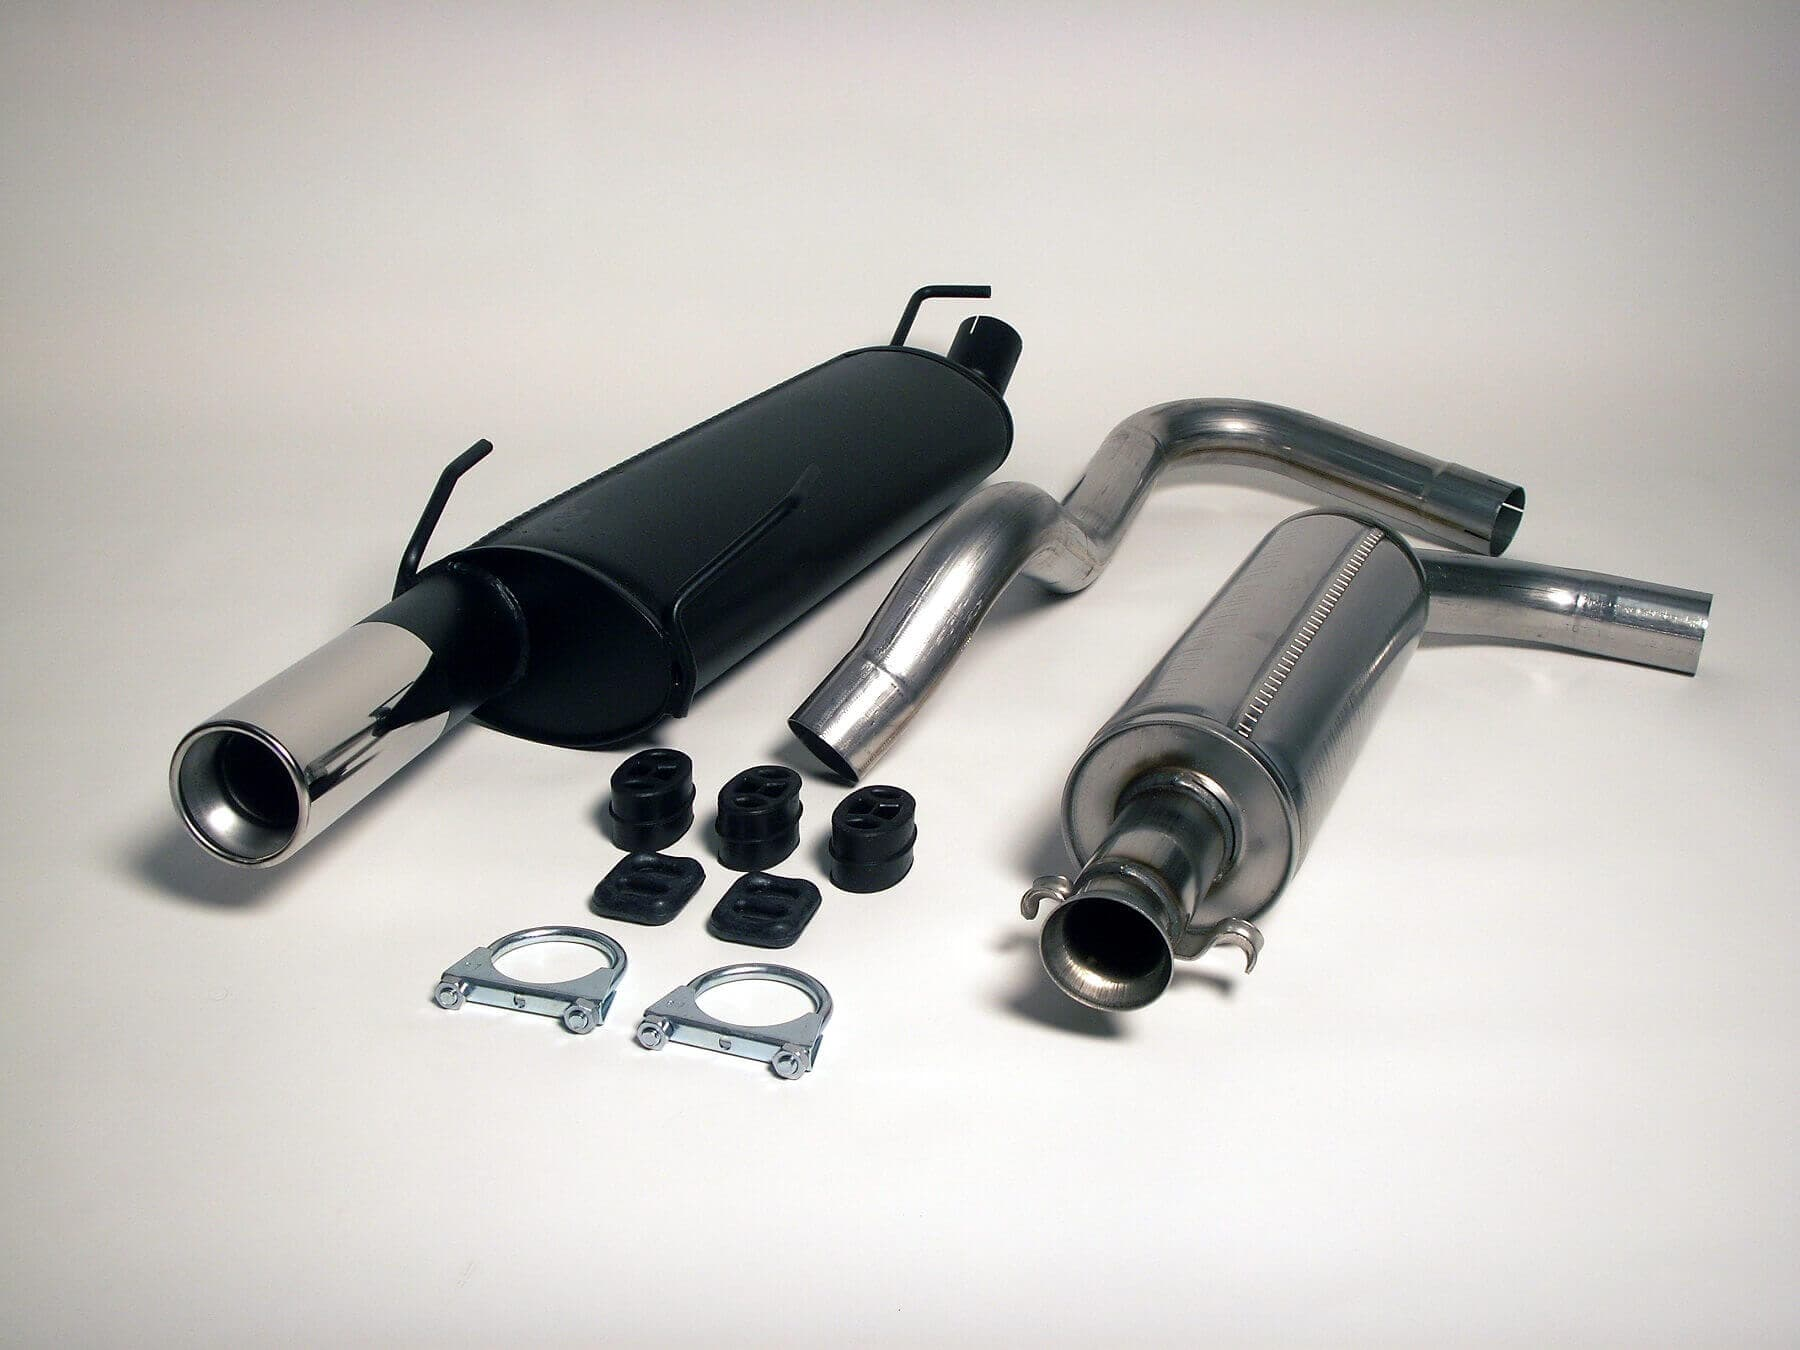 Saab 900 Turbo Coupe Cabrio Jetex Performance Stainless Steel Cat Back Exhaust System with Round 90mm Tail Pipe